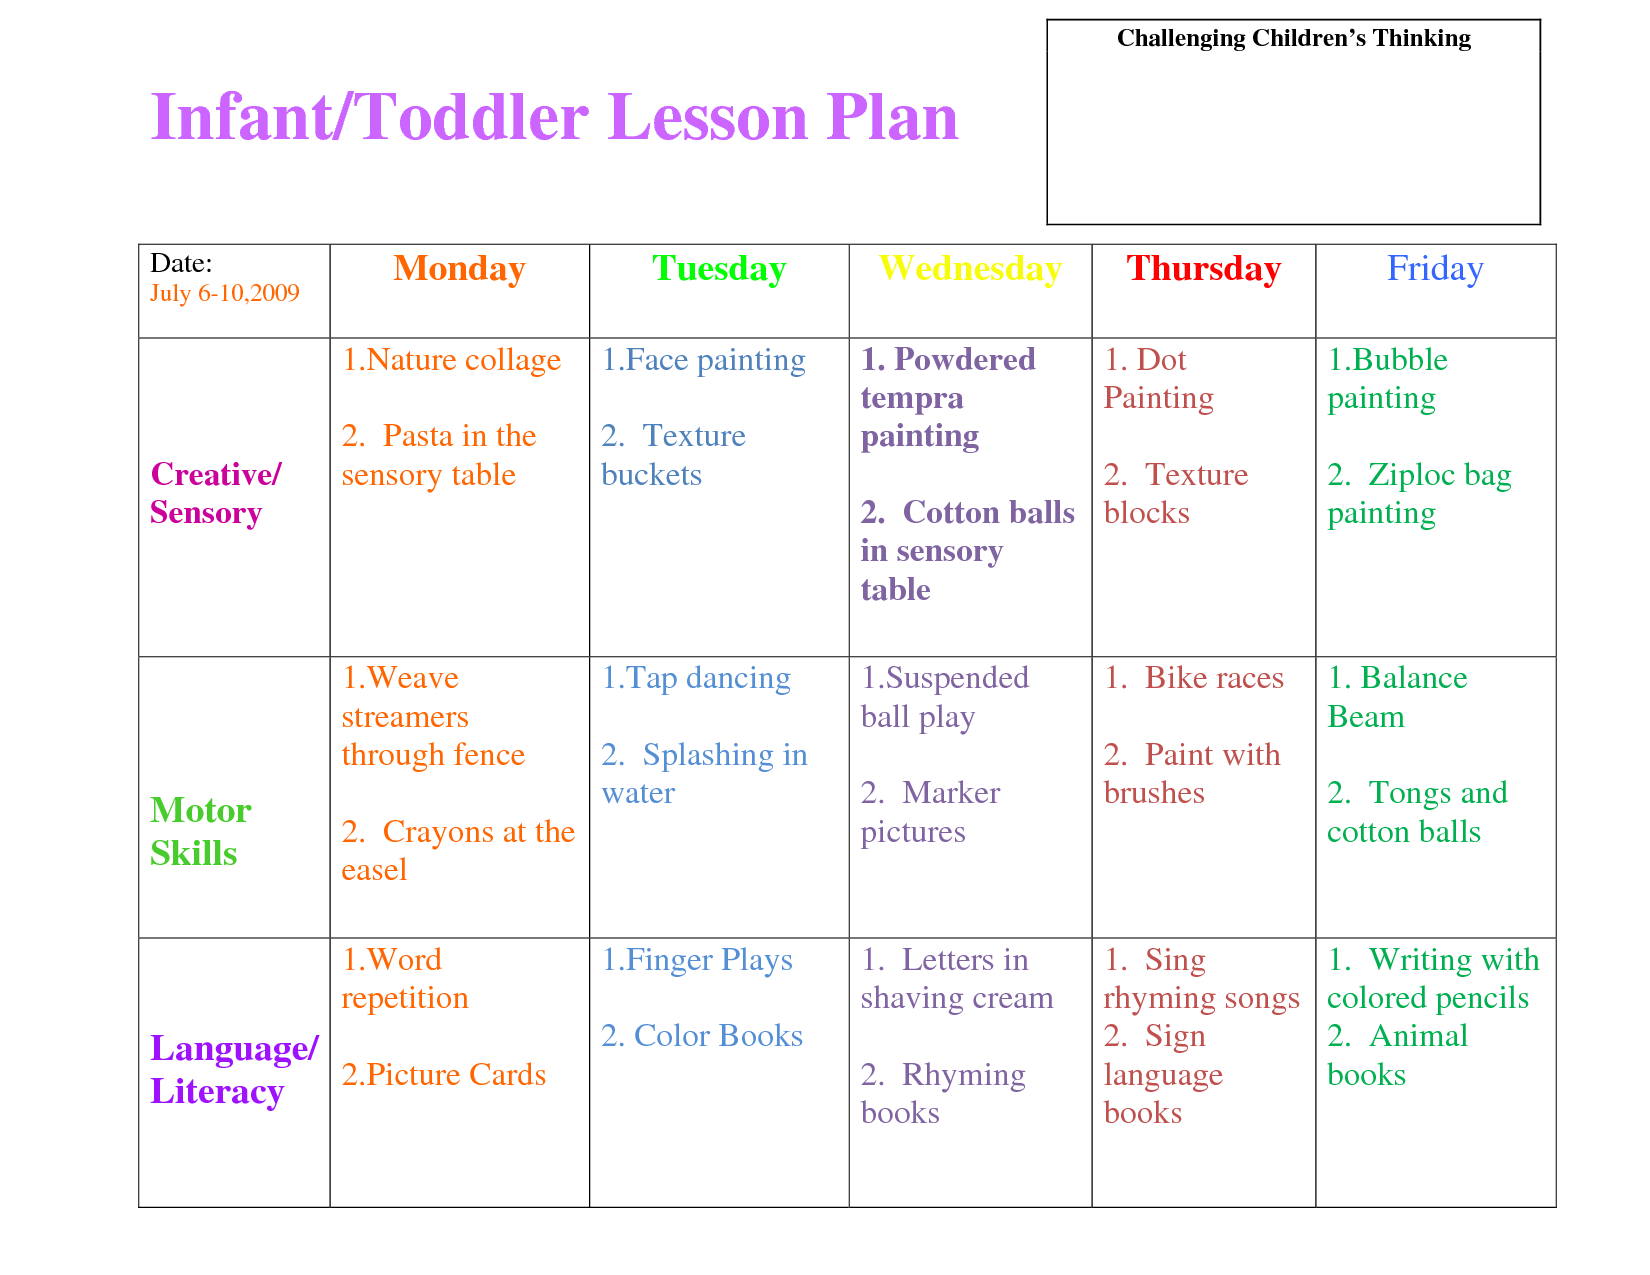 Infant Toddlers Lesson Plan Infant Toddlers Lesson Plan - Free daily lesson plan template printable